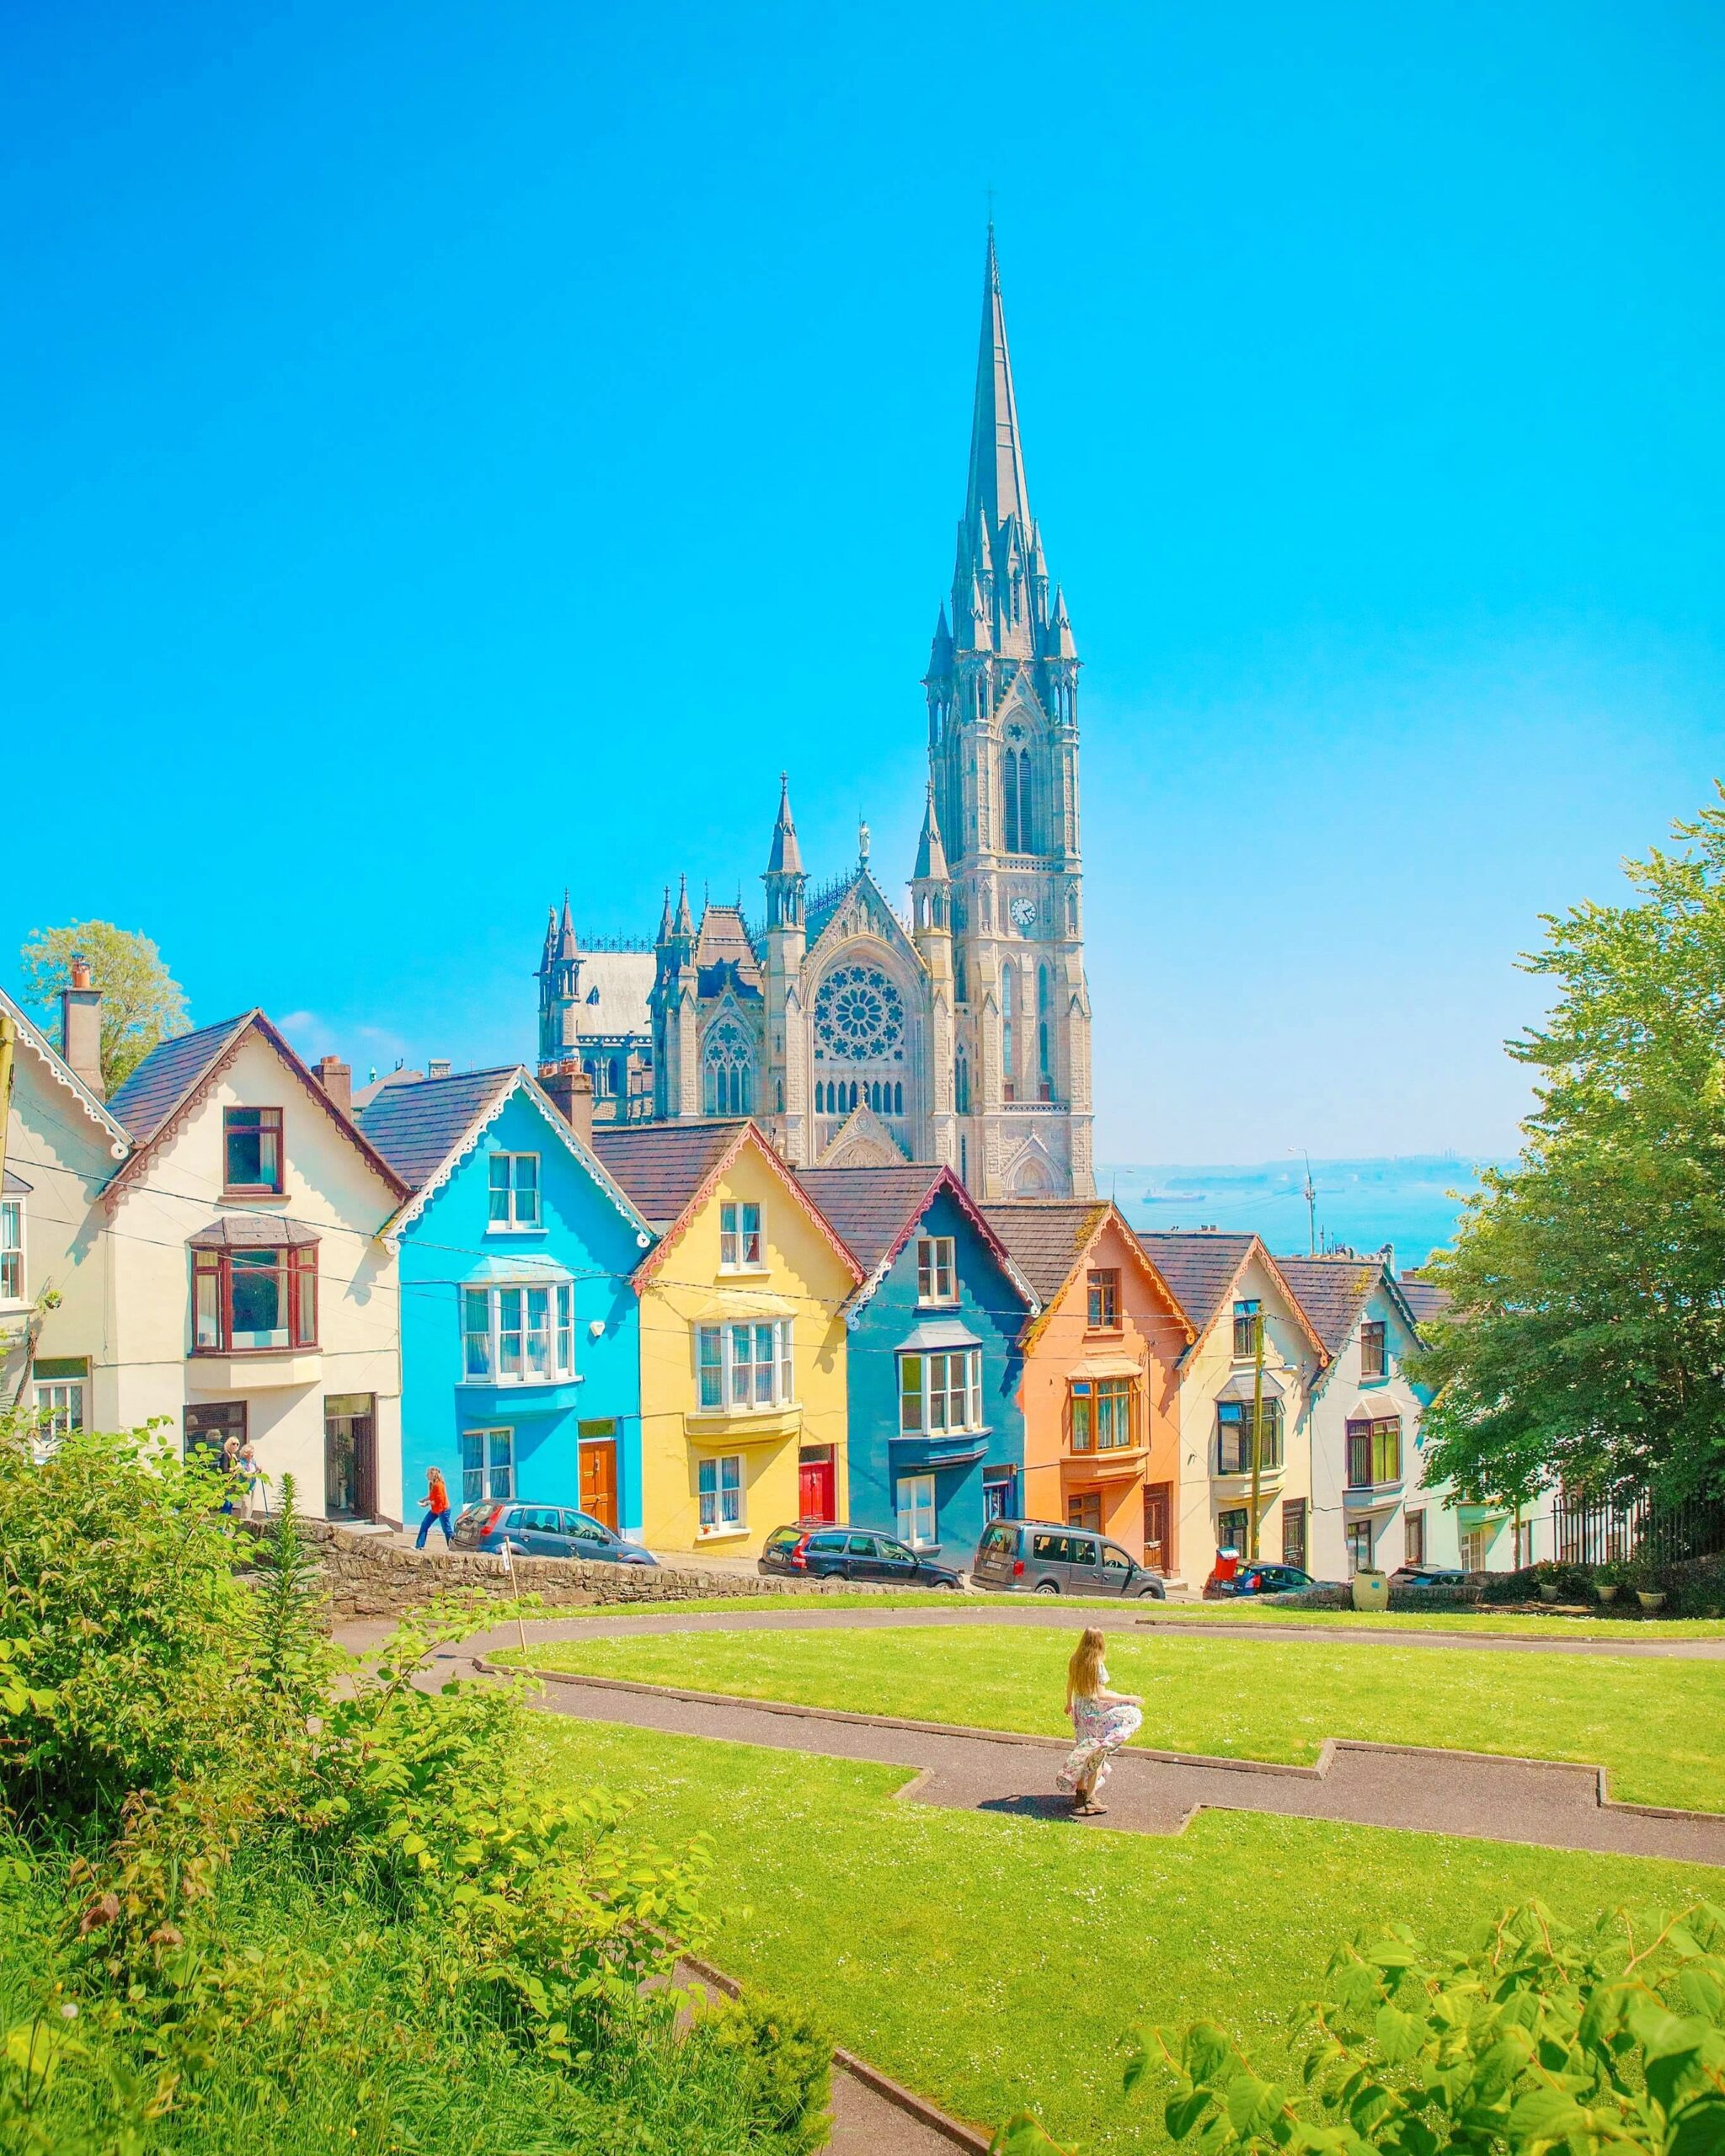 Explore the Deck of Cards Houses viewpoint on your hunt for fun things to do in Cobh, Ireland